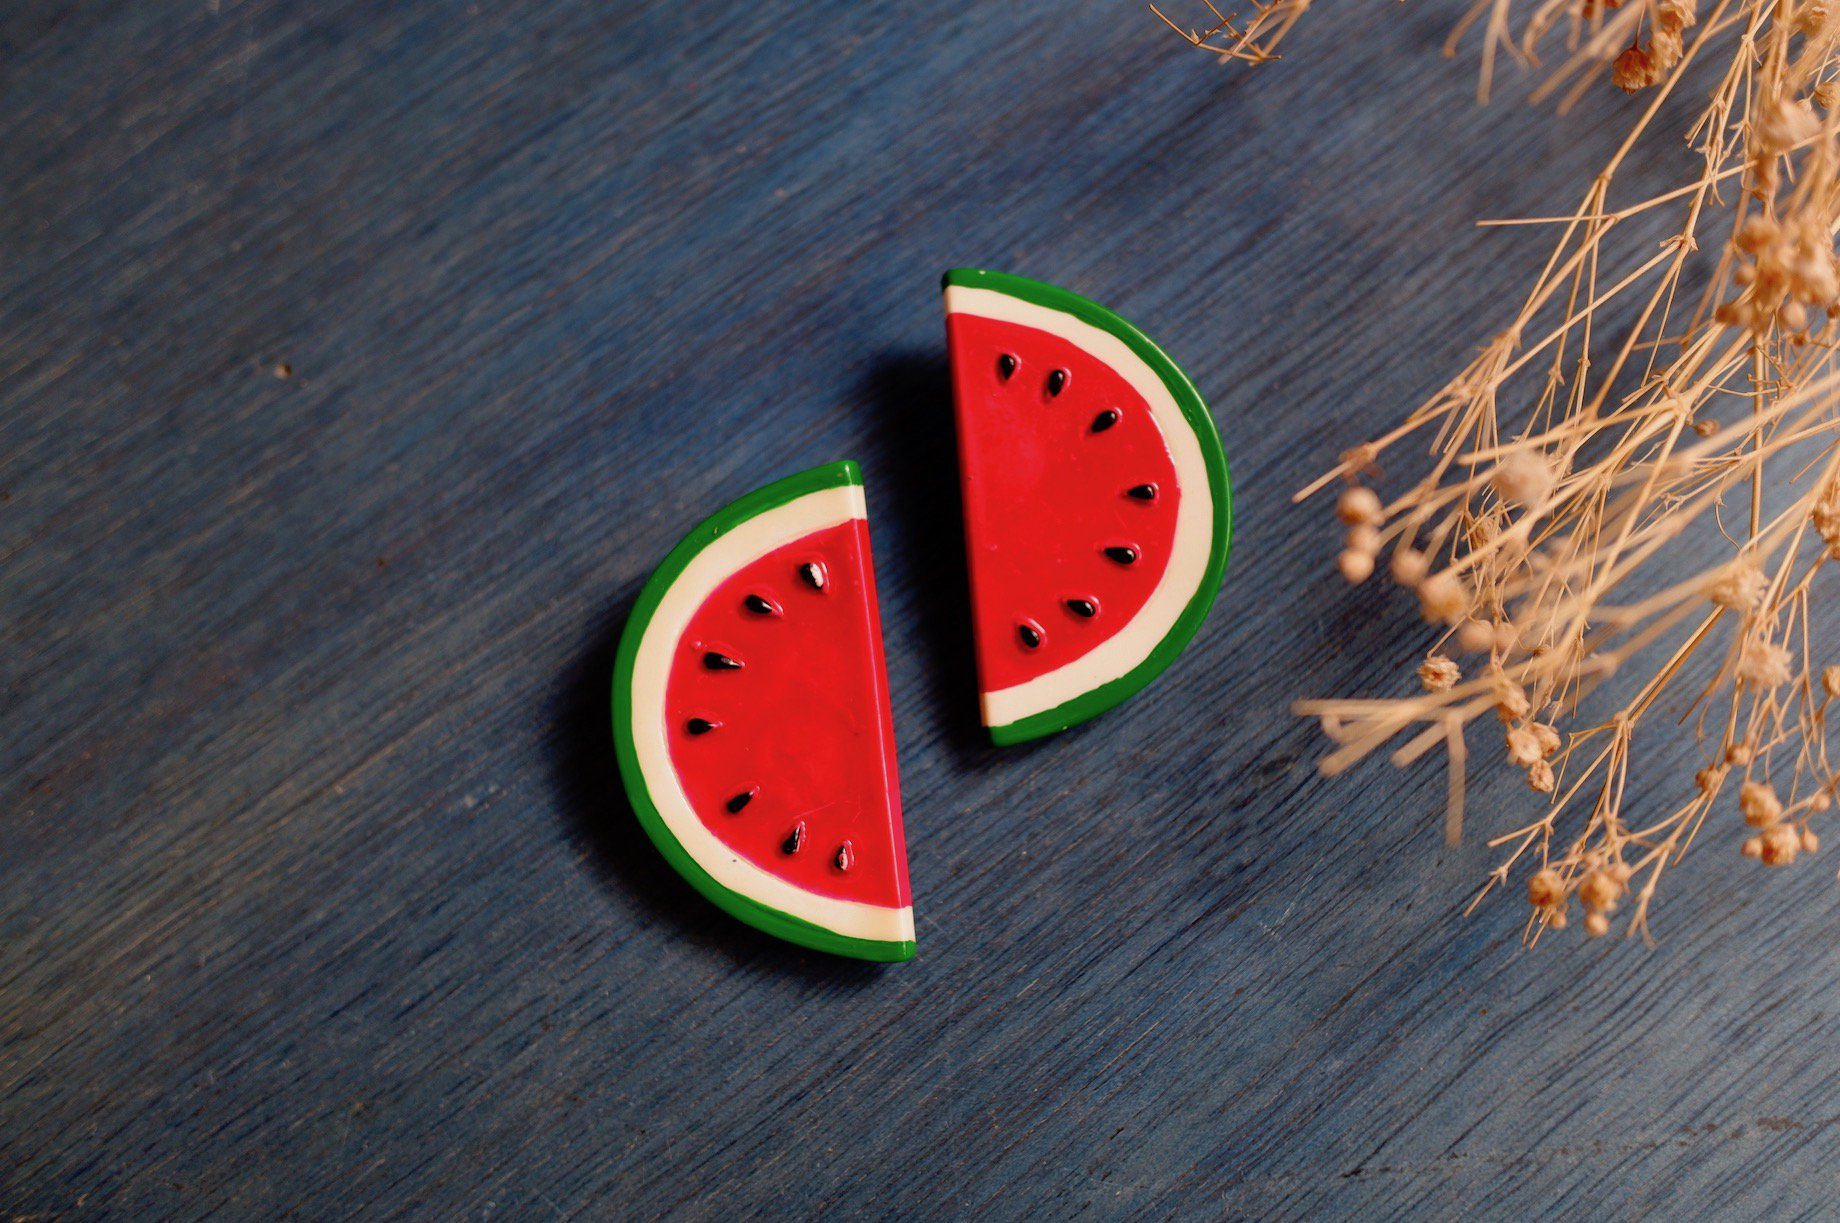 <img class='new_mark_img1' src='https://img.shop-pro.jp/img/new/icons42.gif' style='border:none;display:inline;margin:0px;padding:0px;width:auto;' />vintage/watermelon split earring